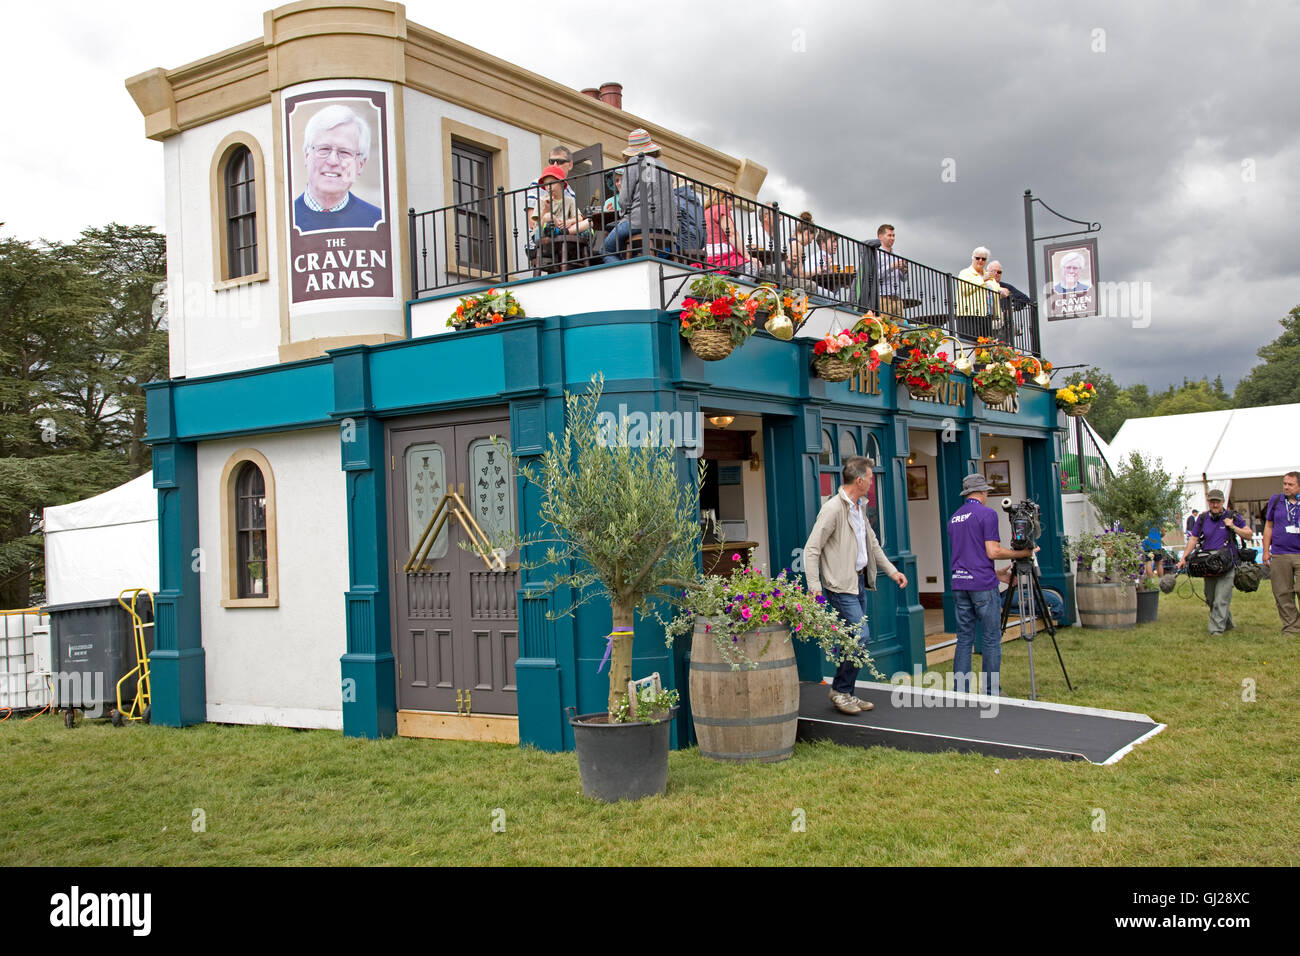 Visitors at Craven Arms pub Countryfile Live 2016 Blenheim Palace Woodstock UK - Stock Image